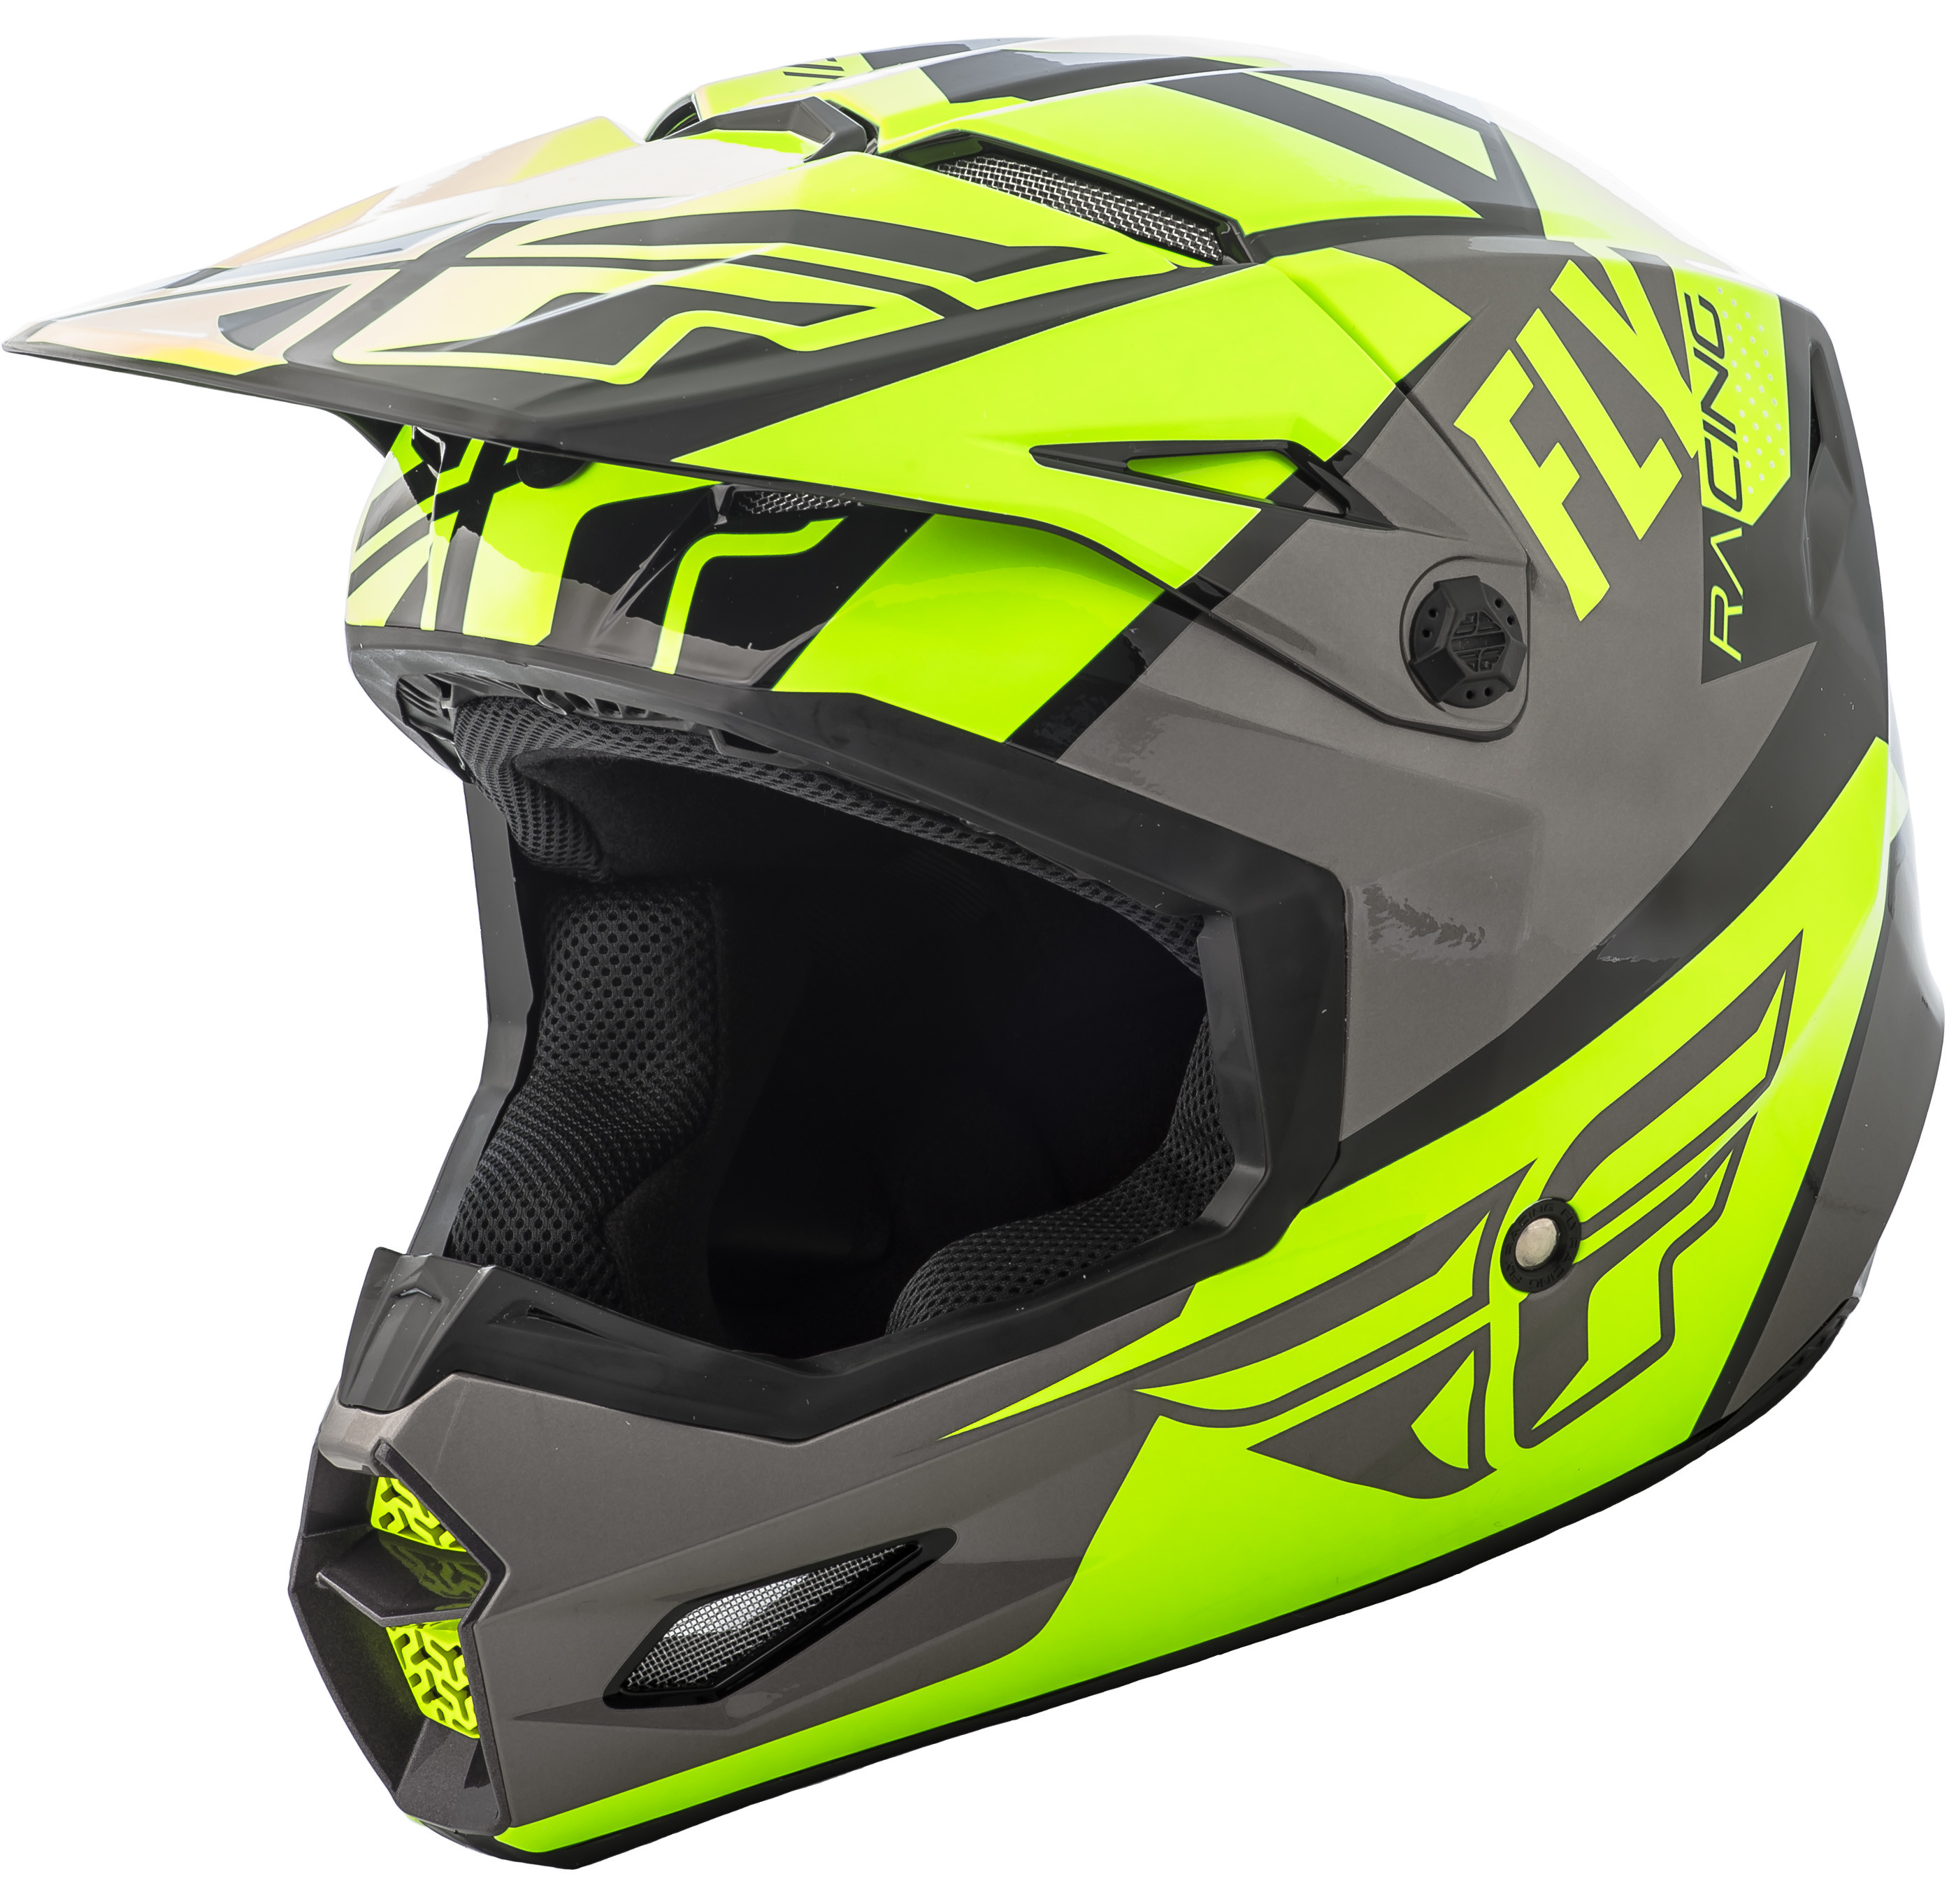 Elite Guild Helmet Hi-Vis/Grey/Black 2X